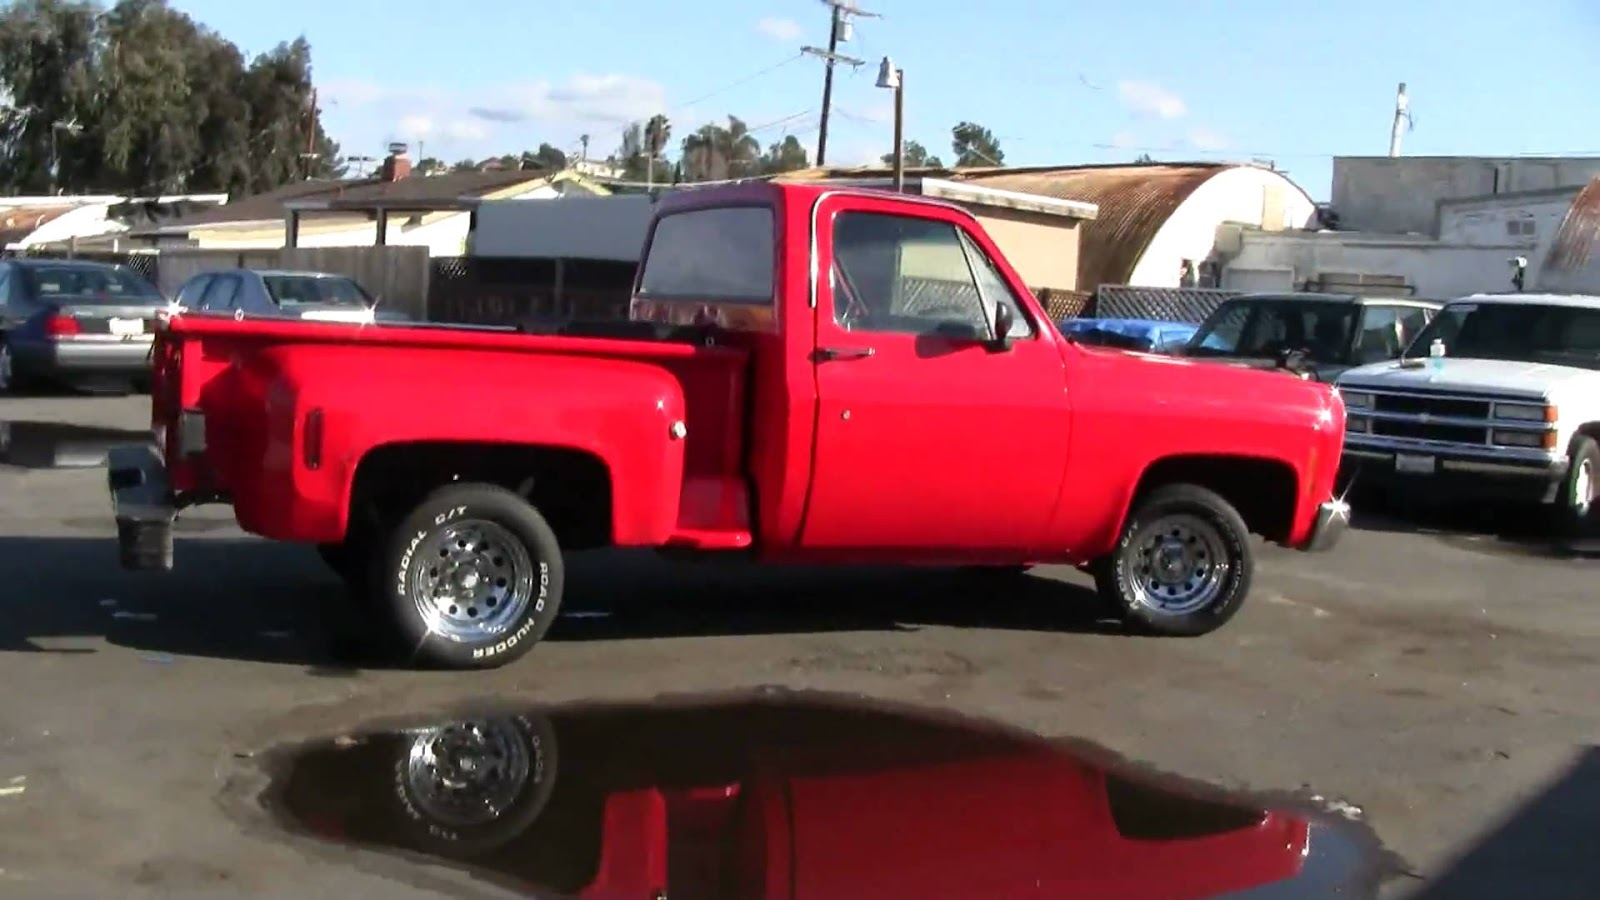 1977 chevy truck lowered red colors cheap trucks for sale